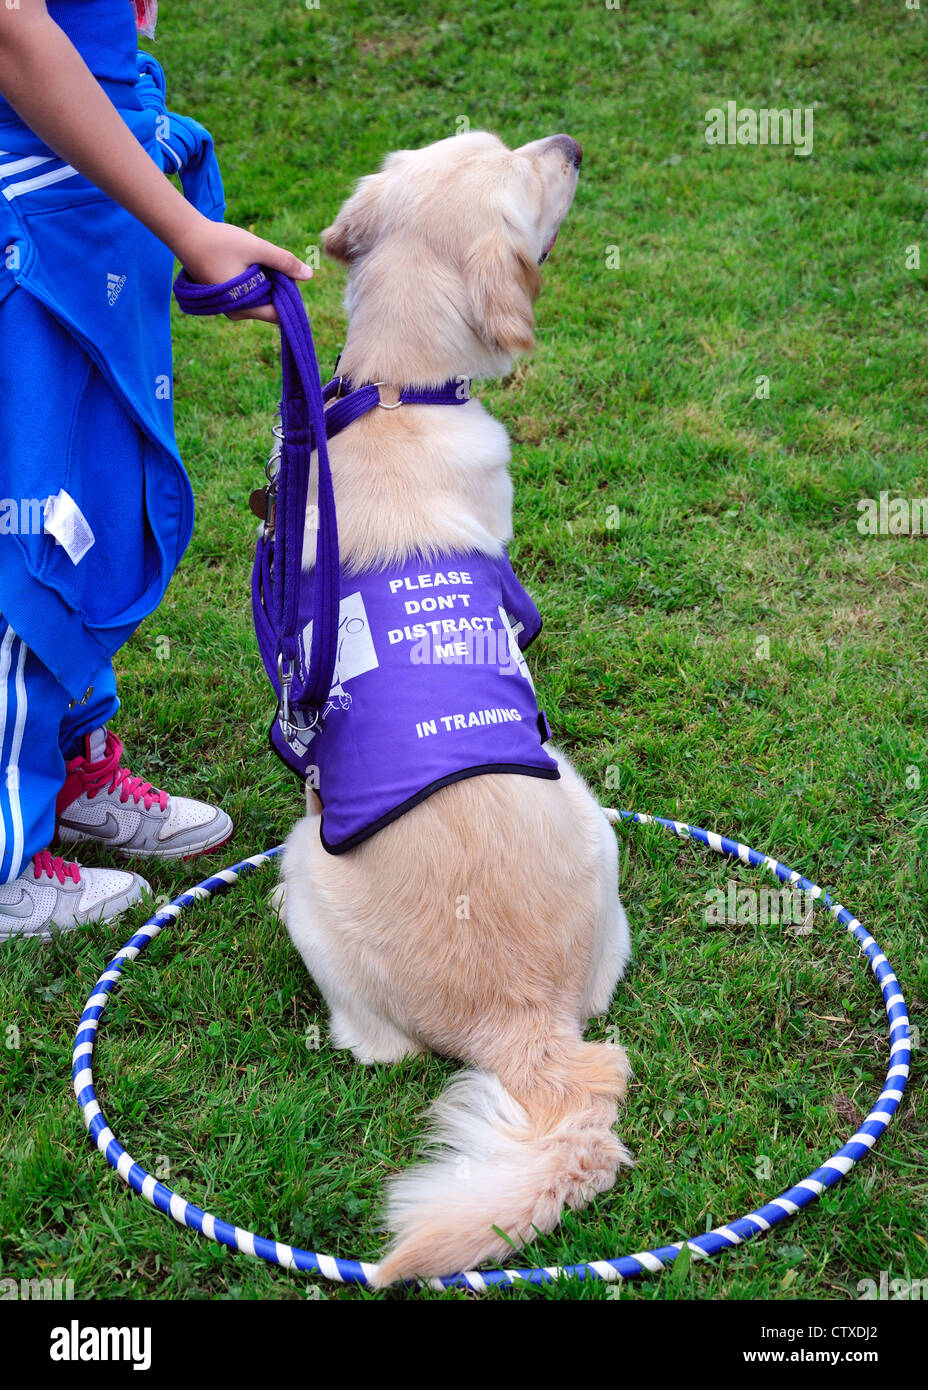 Golden retriever undergoing training. Pollok Park family day, Glasgow, Scotland, UK - Stock Image